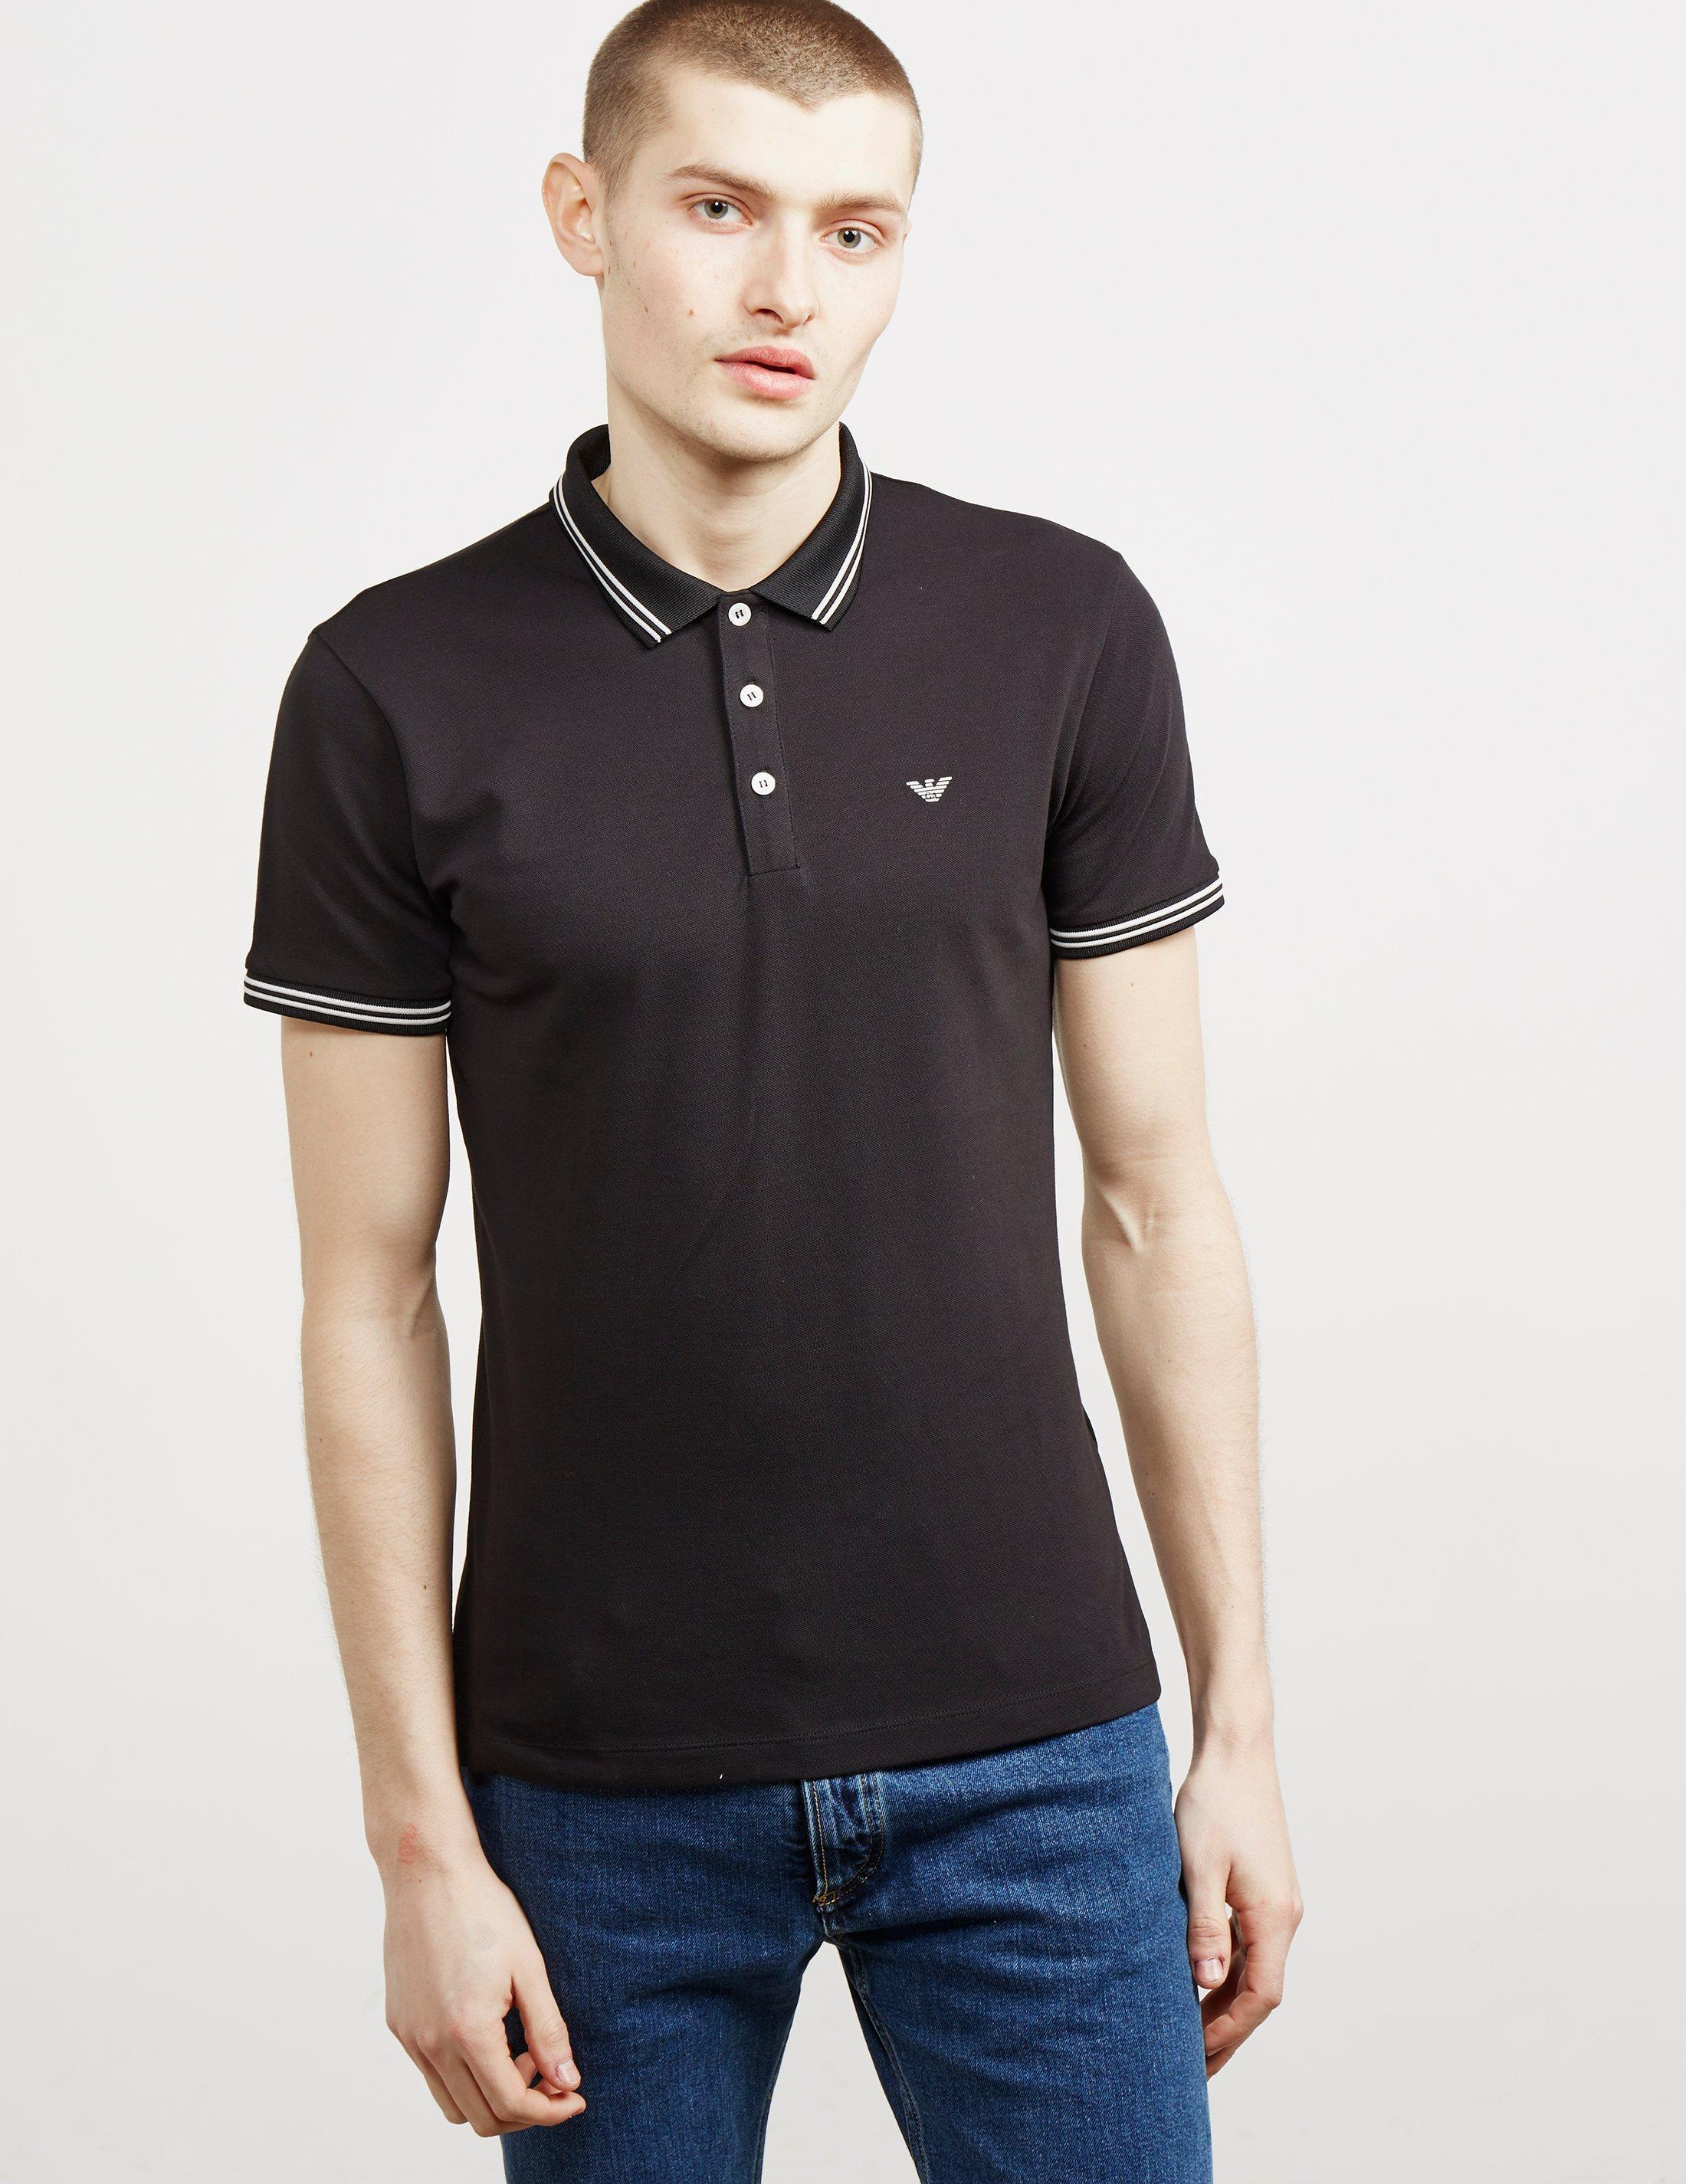 25f3931e Lyst - Emporio Armani Basic Tipped Short Sleeve Polo Shirt Black in ...